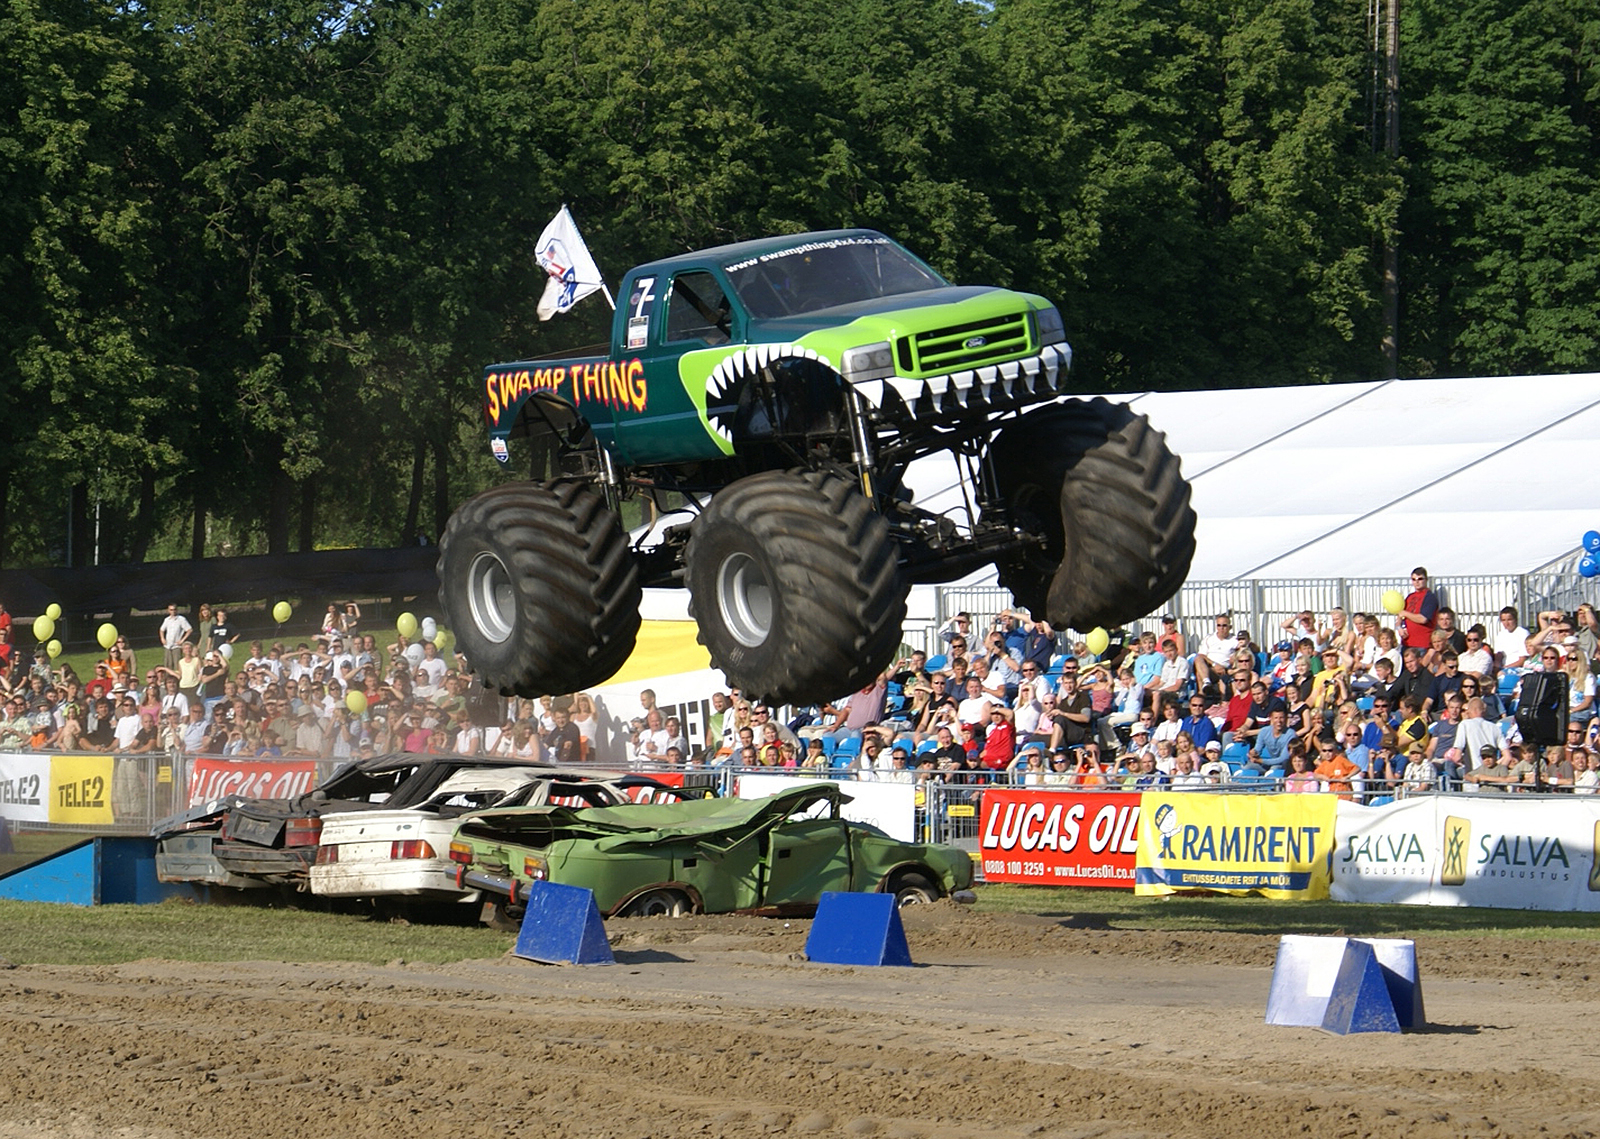 monstertrucks_wallpaper_015_1600_1139.jpg